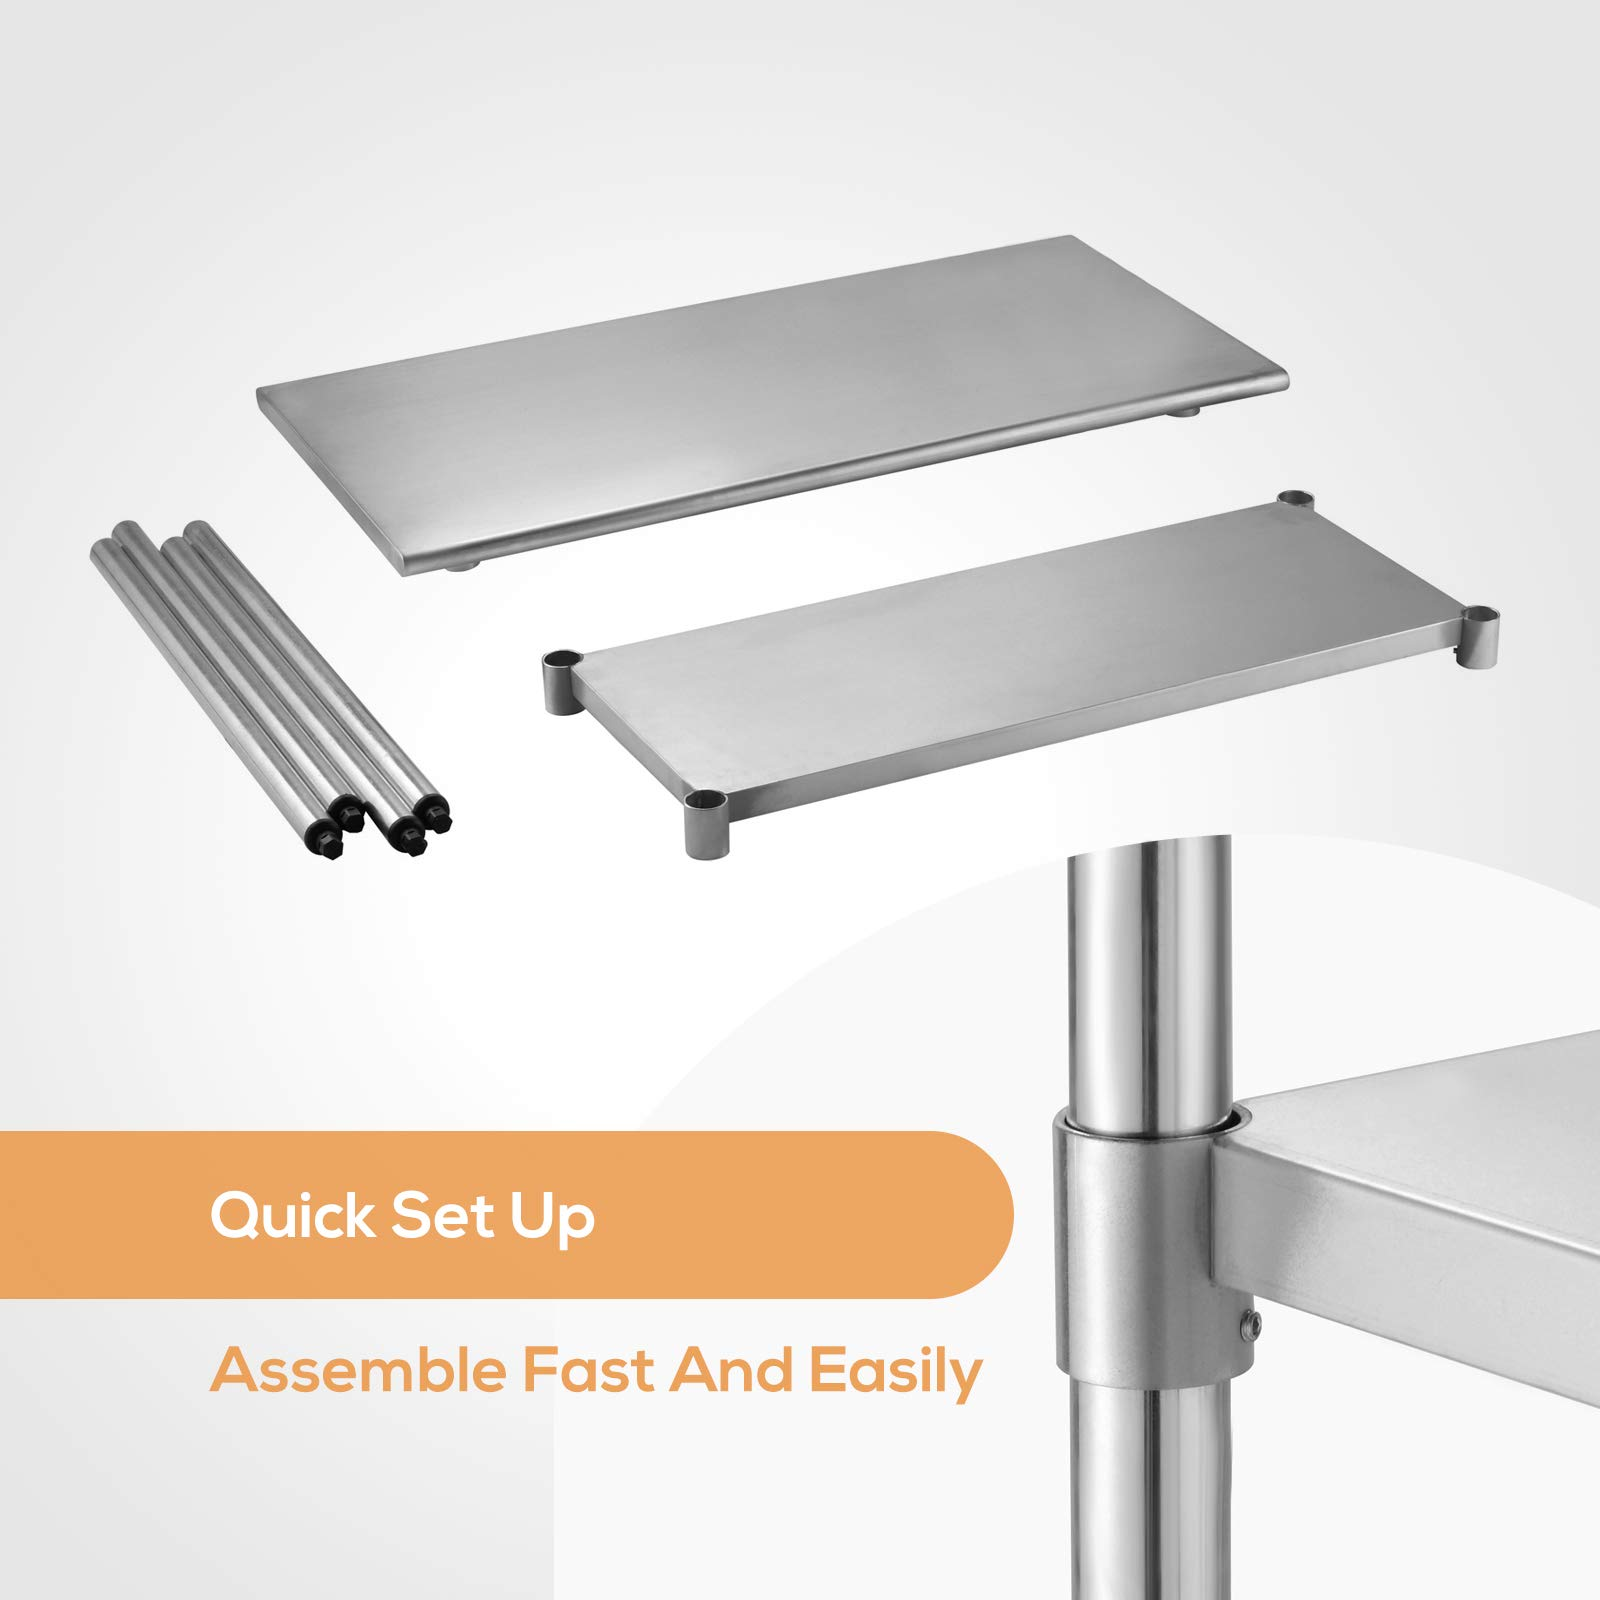 SUNCOO Commercial Stainless Steel Work Table Food Grade Kitchen Prep Workbench Metal Restaurant Countertop Workstation with Adjustable Undershelf 48 in Long x 24 in Deep by SUNCOO (Image #7)